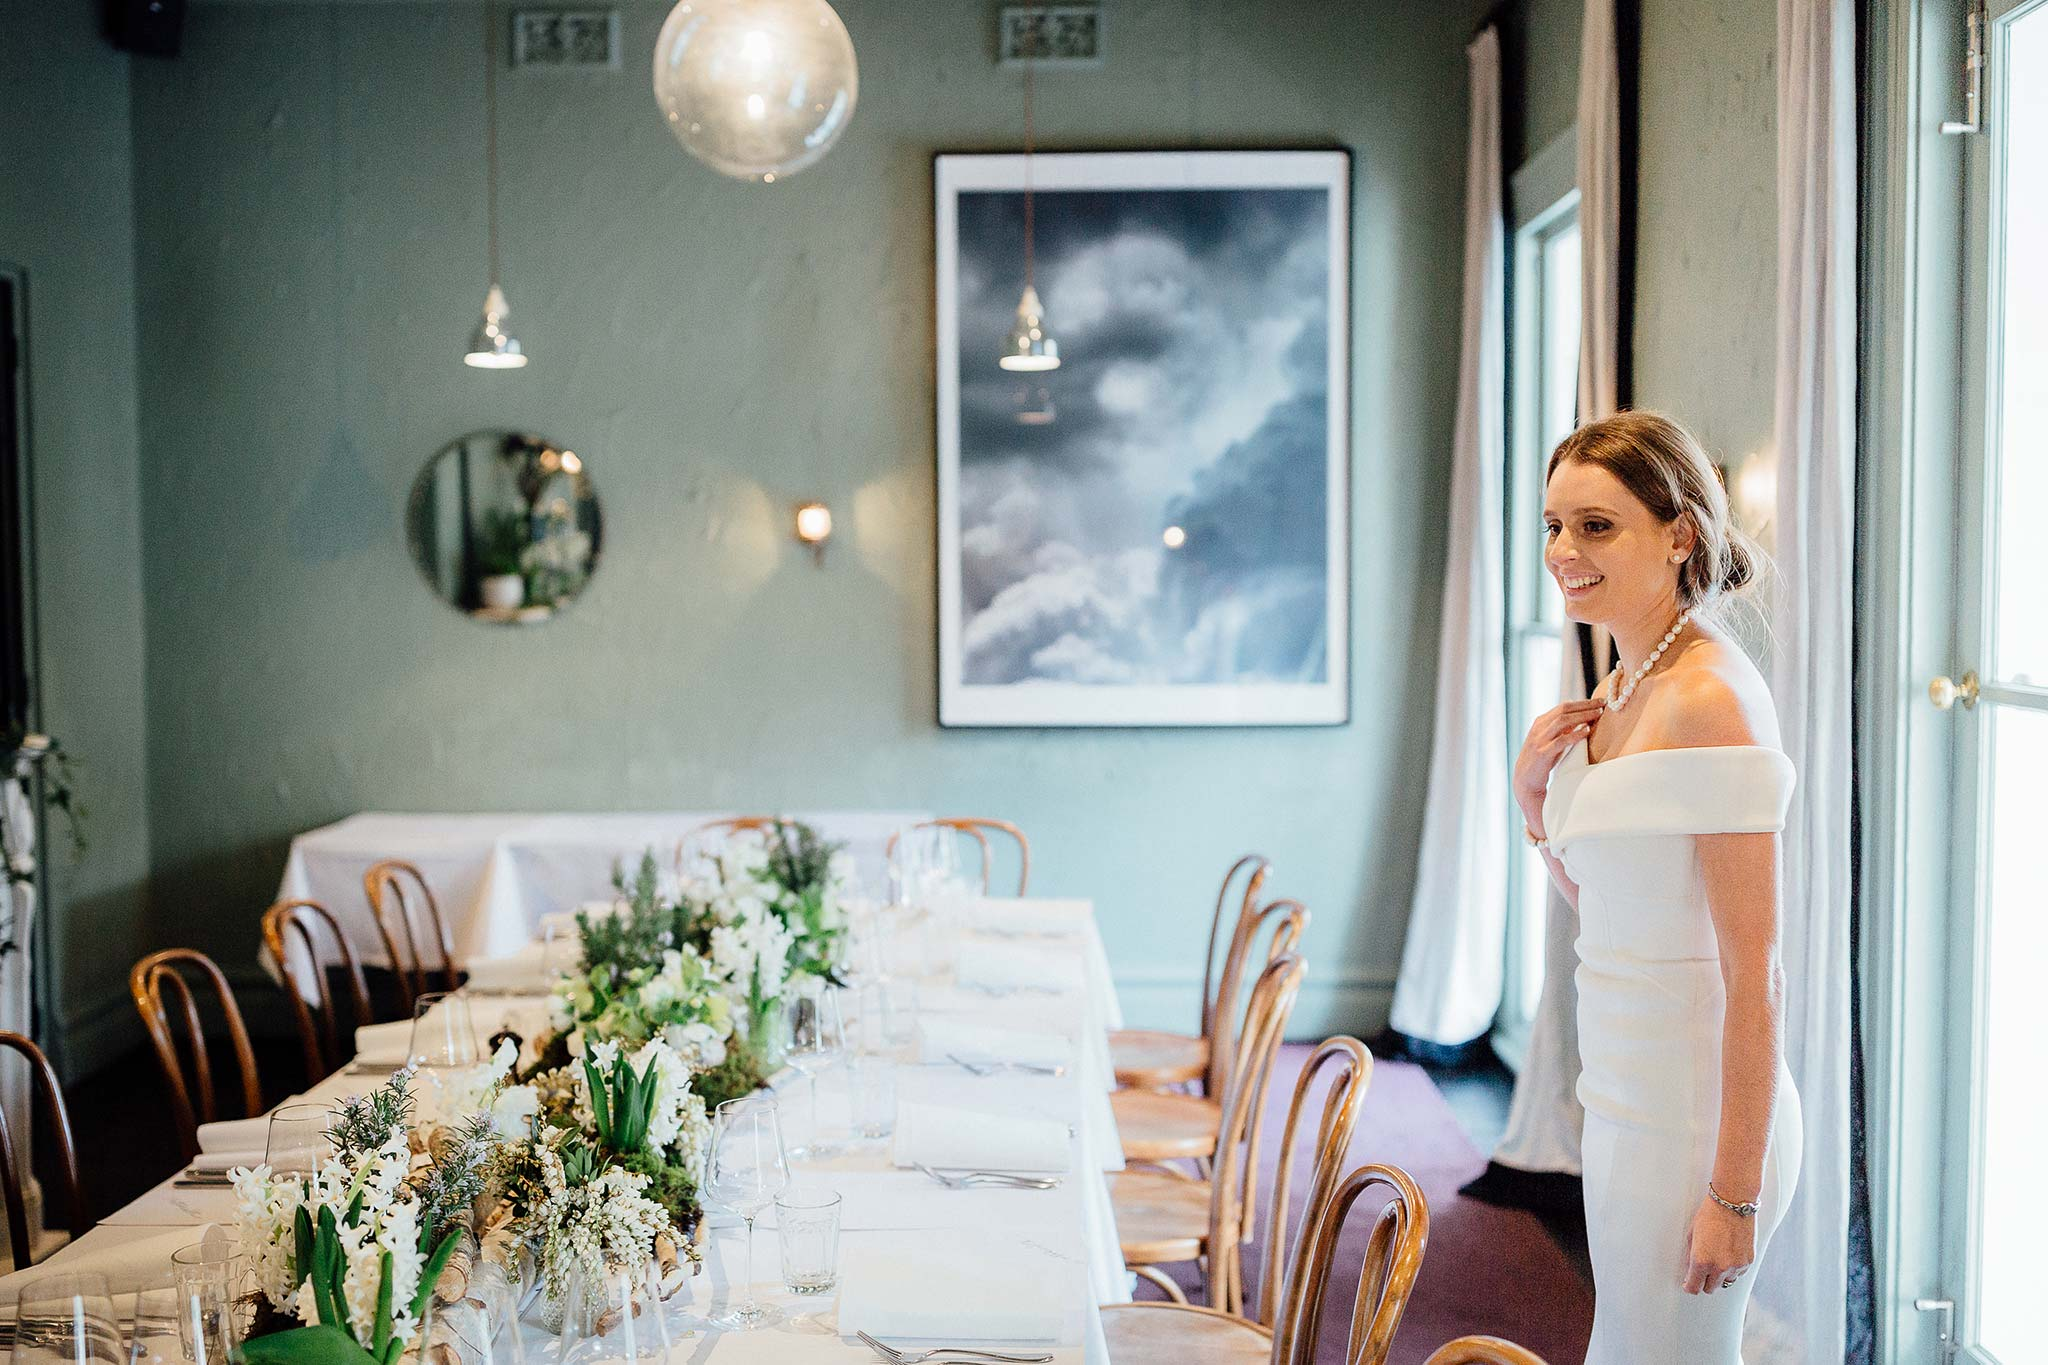 melbourne-entrecote-wedding-ceremony-interior